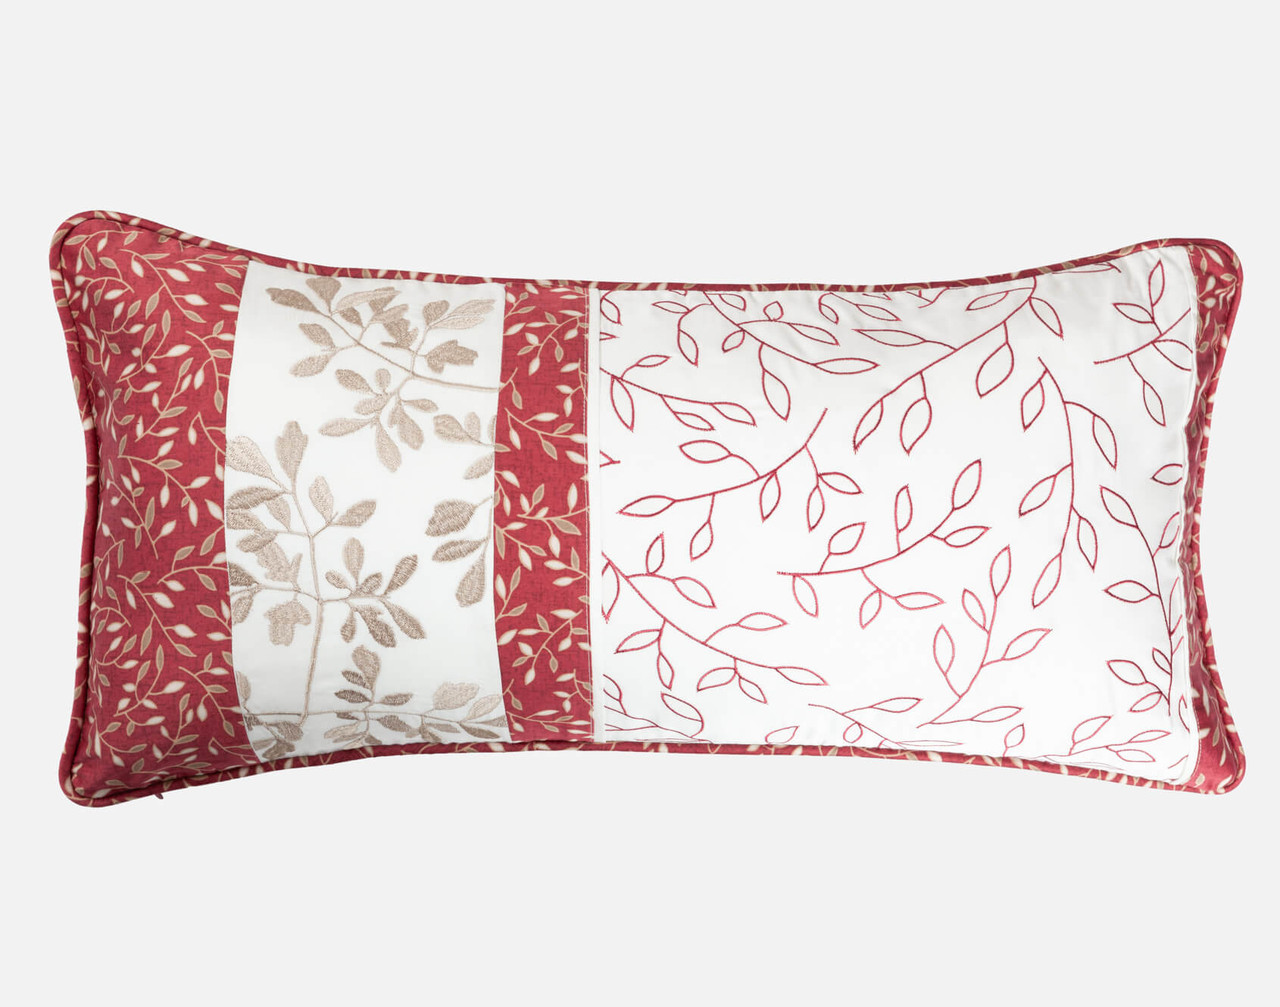 Aubrey Boudoir Cushion Cover features embroidered leaf detailing.